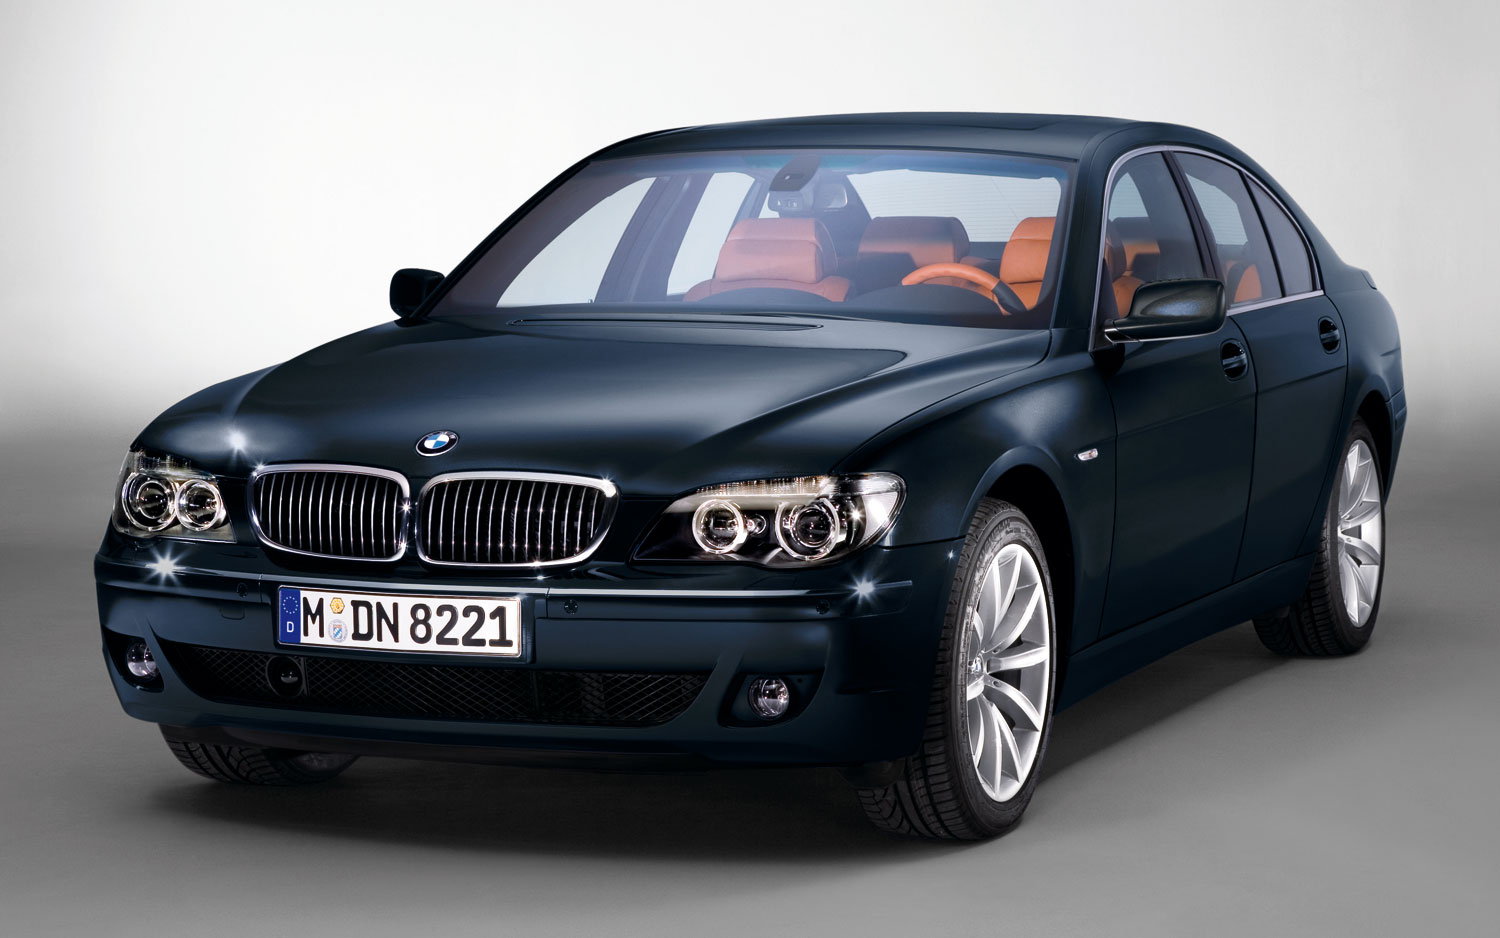 2006 BMW 7 Series Front View1